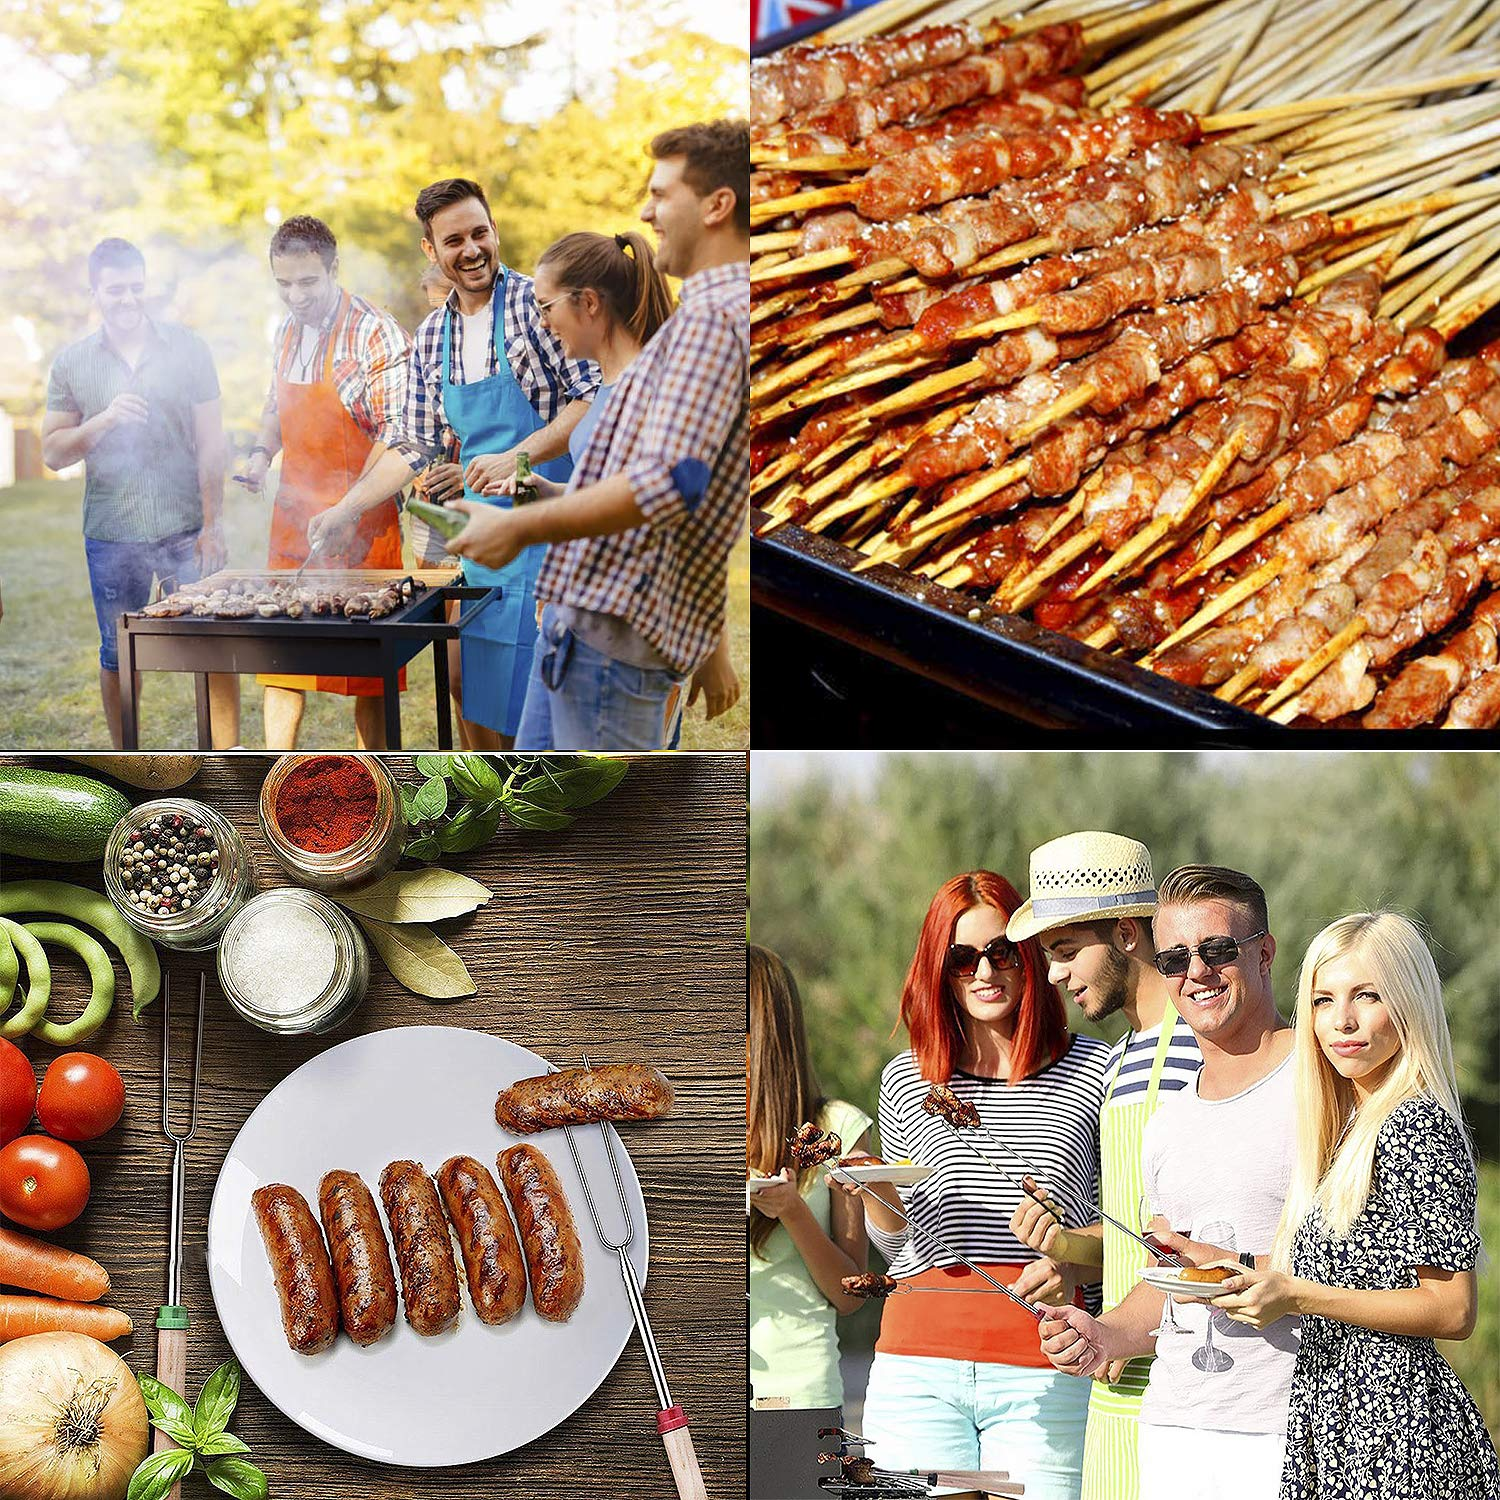 Geboor Marshmallow Roasting Sticks with 20 Bamboo Skewers Free Bag, Barbecue Stainless Steel Grill Sticks Extendable Forks for Campfire Firepit and Sausage BBQ by Geboor (Image #3)